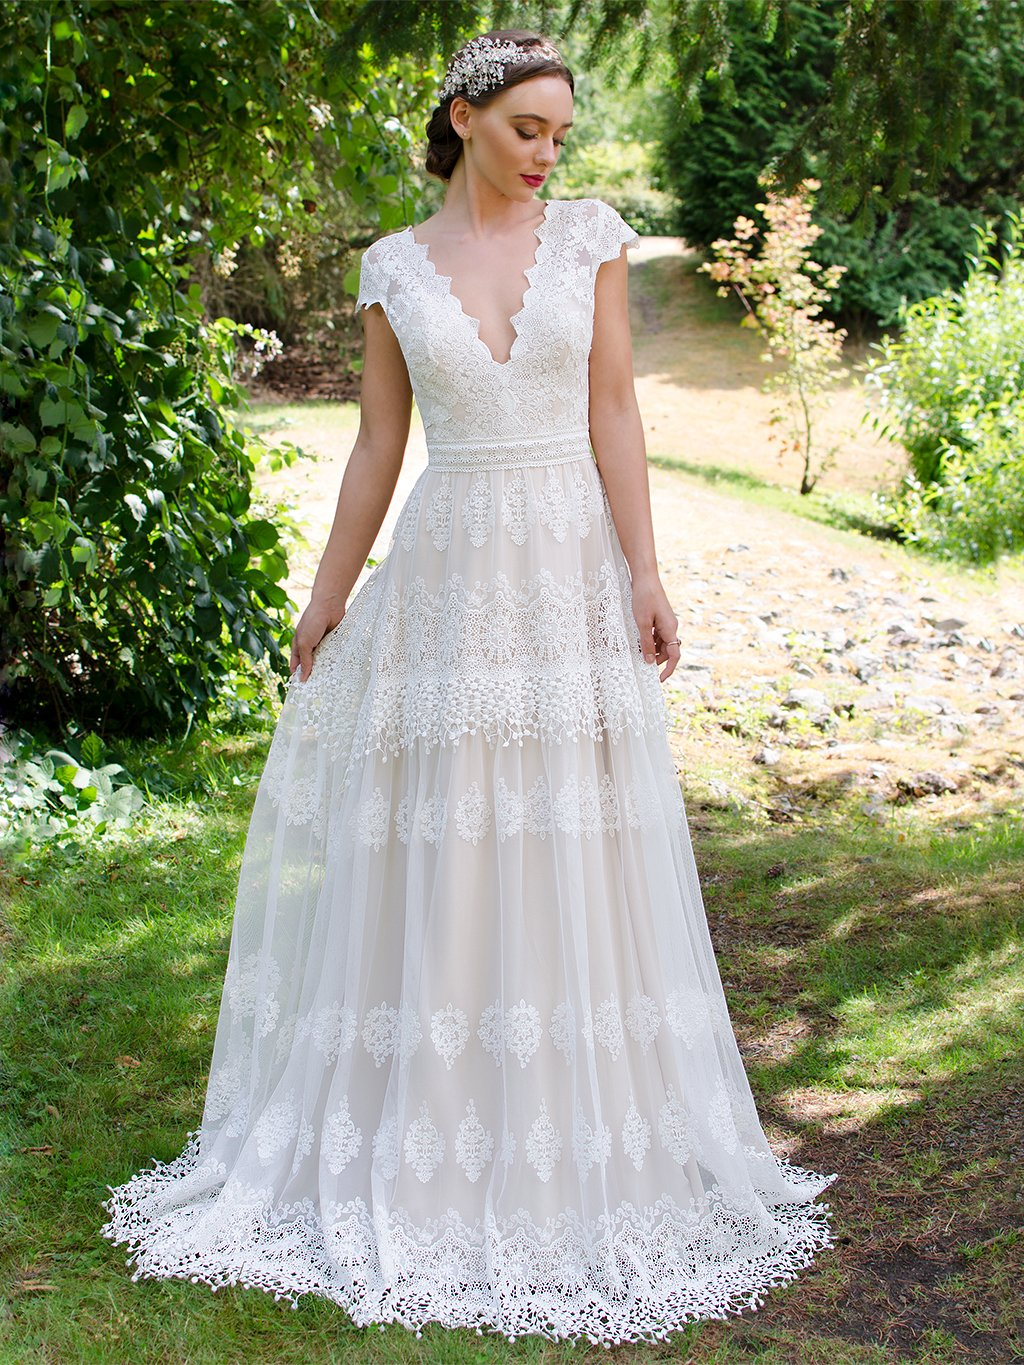 wedding dresses for sale online photo - 1